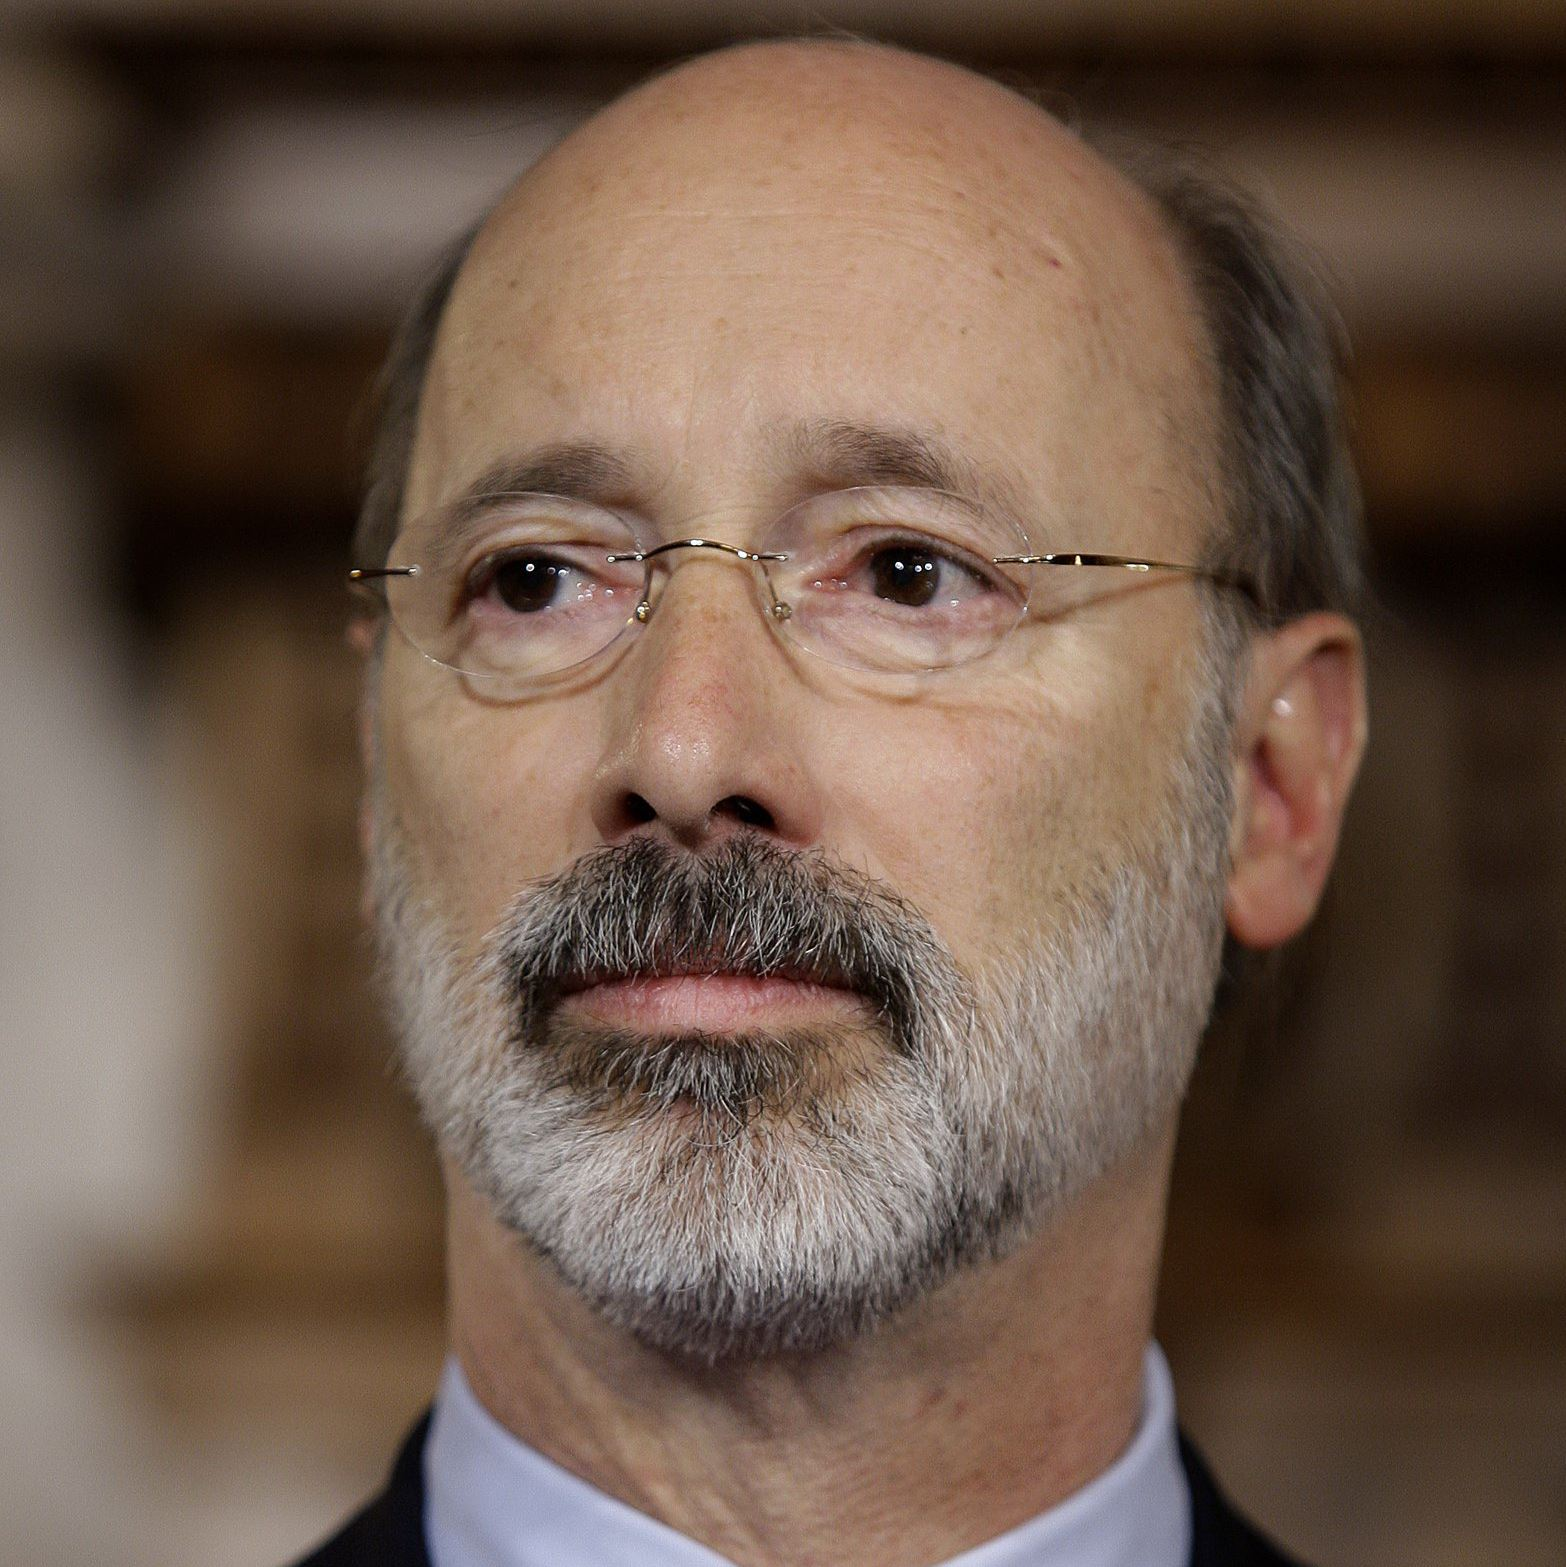 York's Wolf Spending Own Fortune In His Bid For Governor